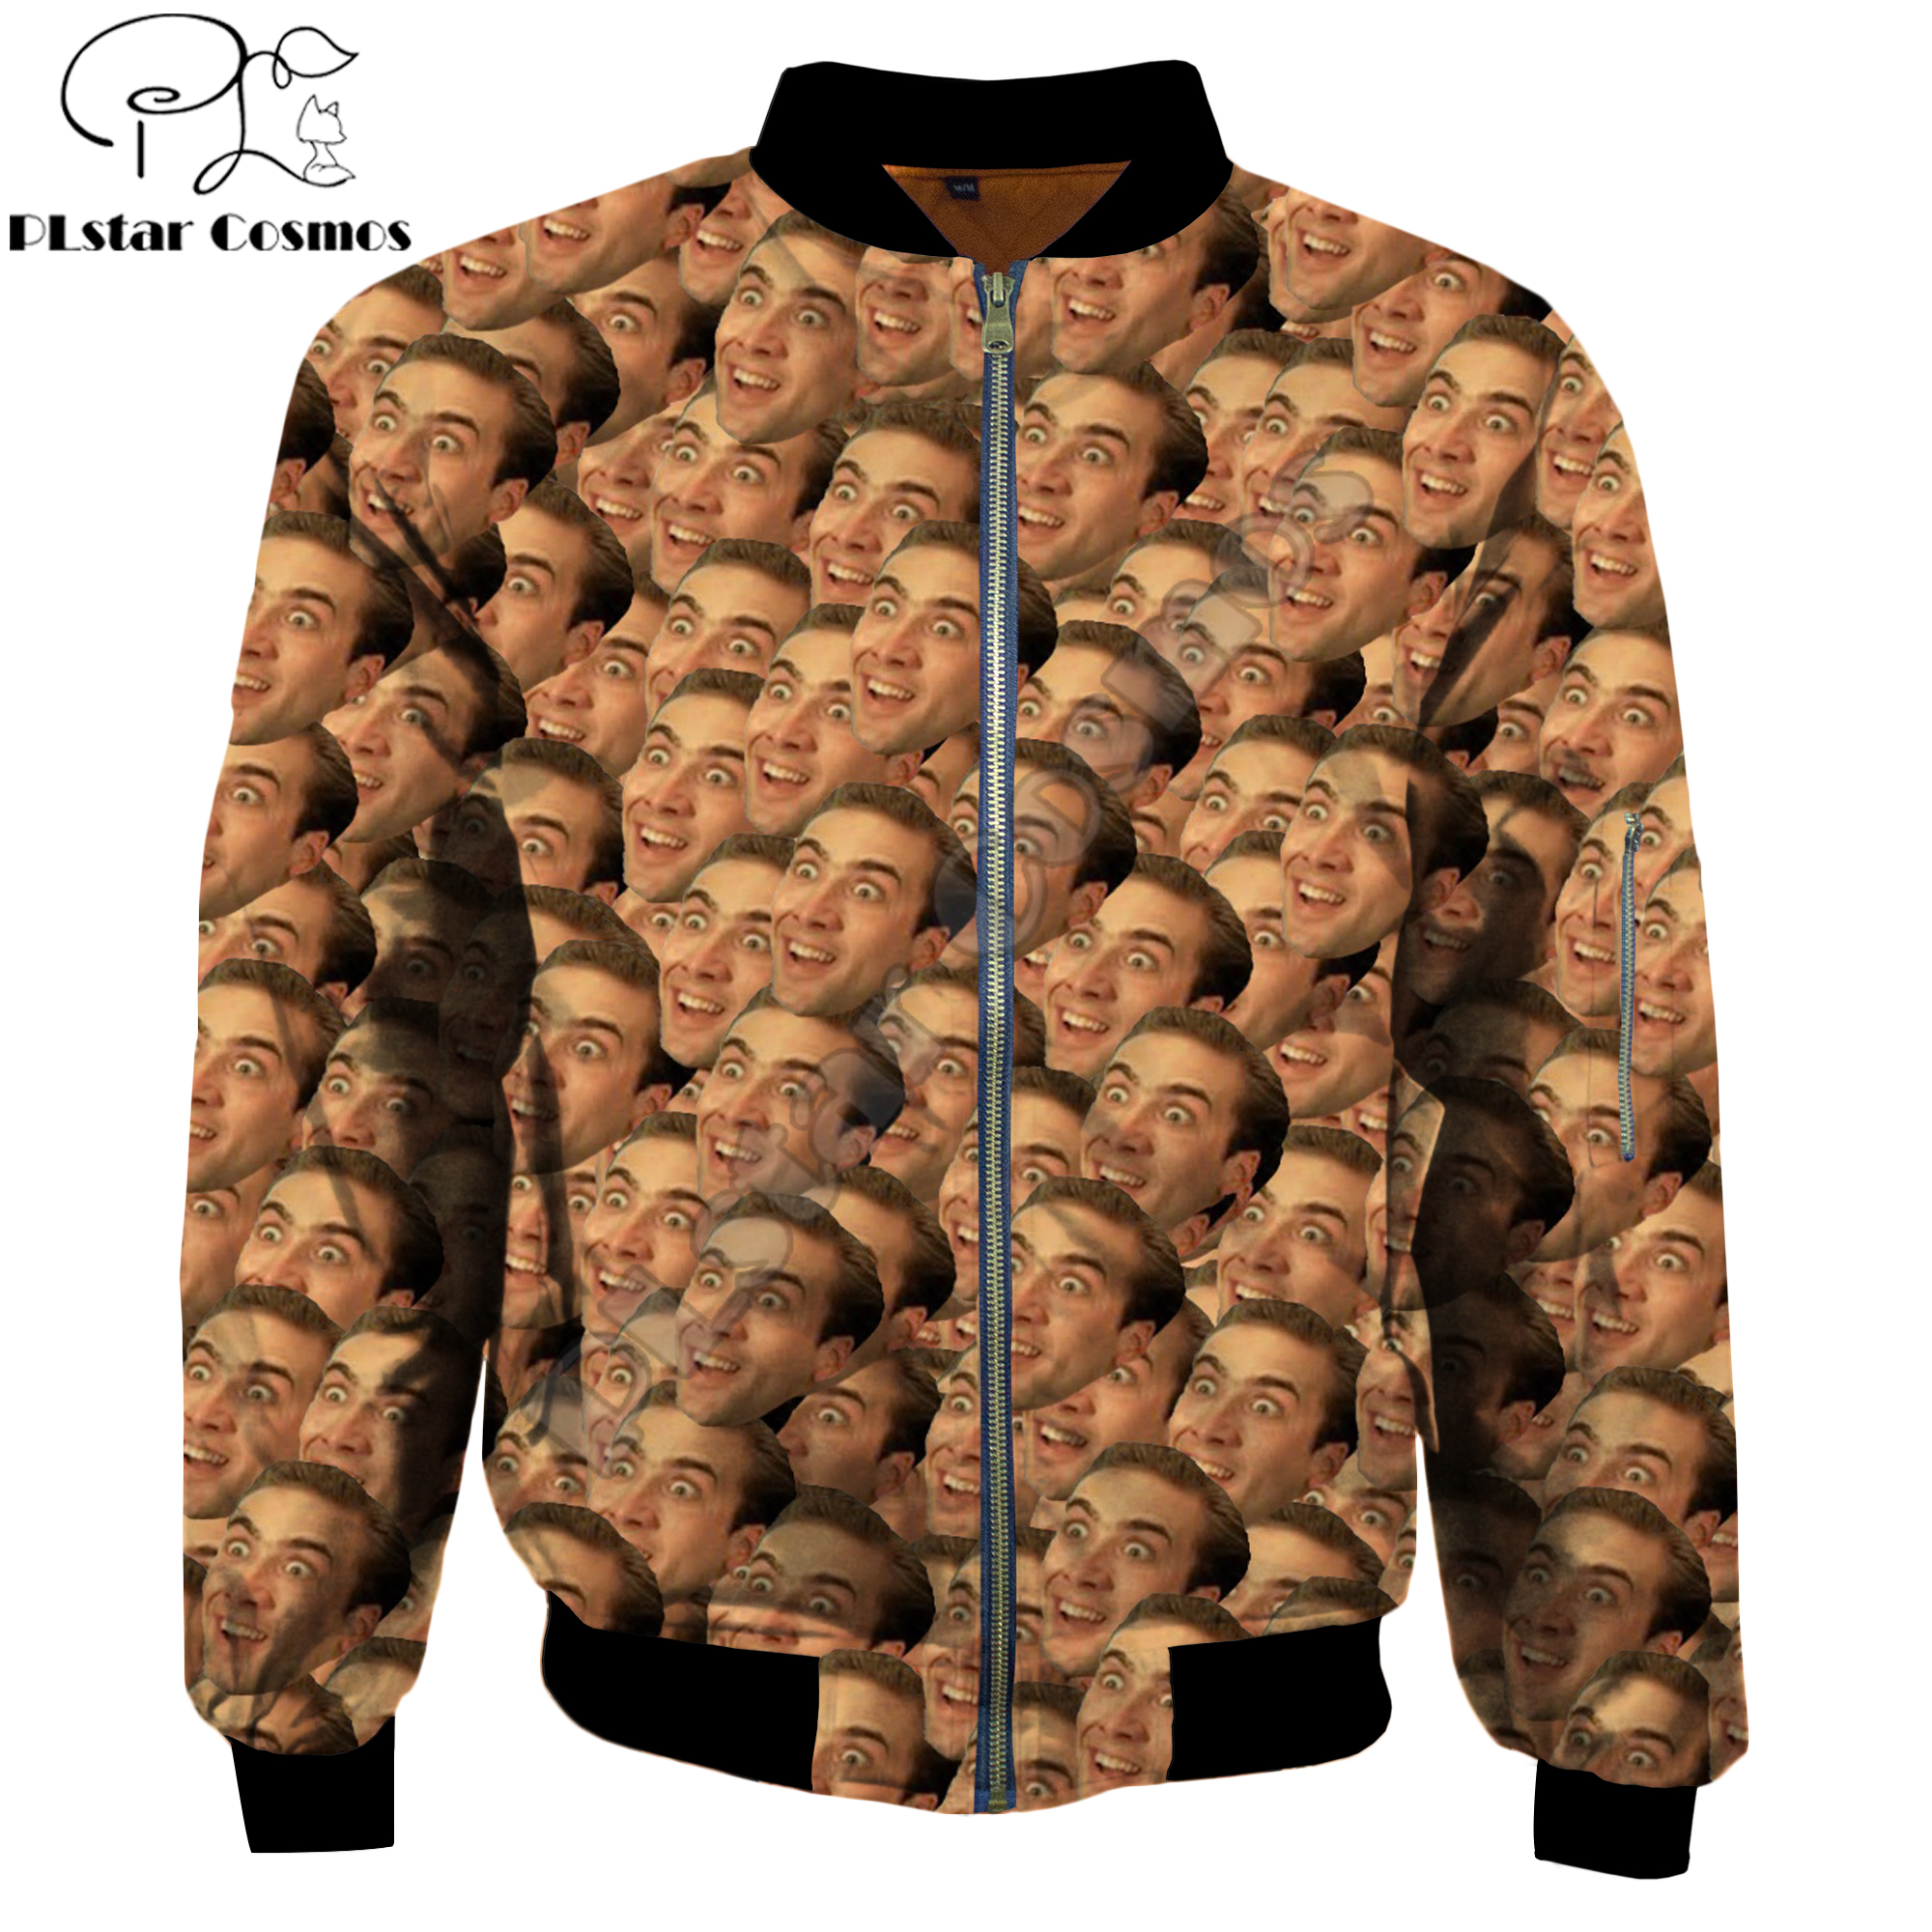 Nicholas Cage has many faces Funny 3D Print Men's Warm <font><b>Bomber</b></font> <font><b>Jackets</b></font> <font><b>Unisex</b></font> Casual Thick winter zip Long Sleeve pocket outwear image